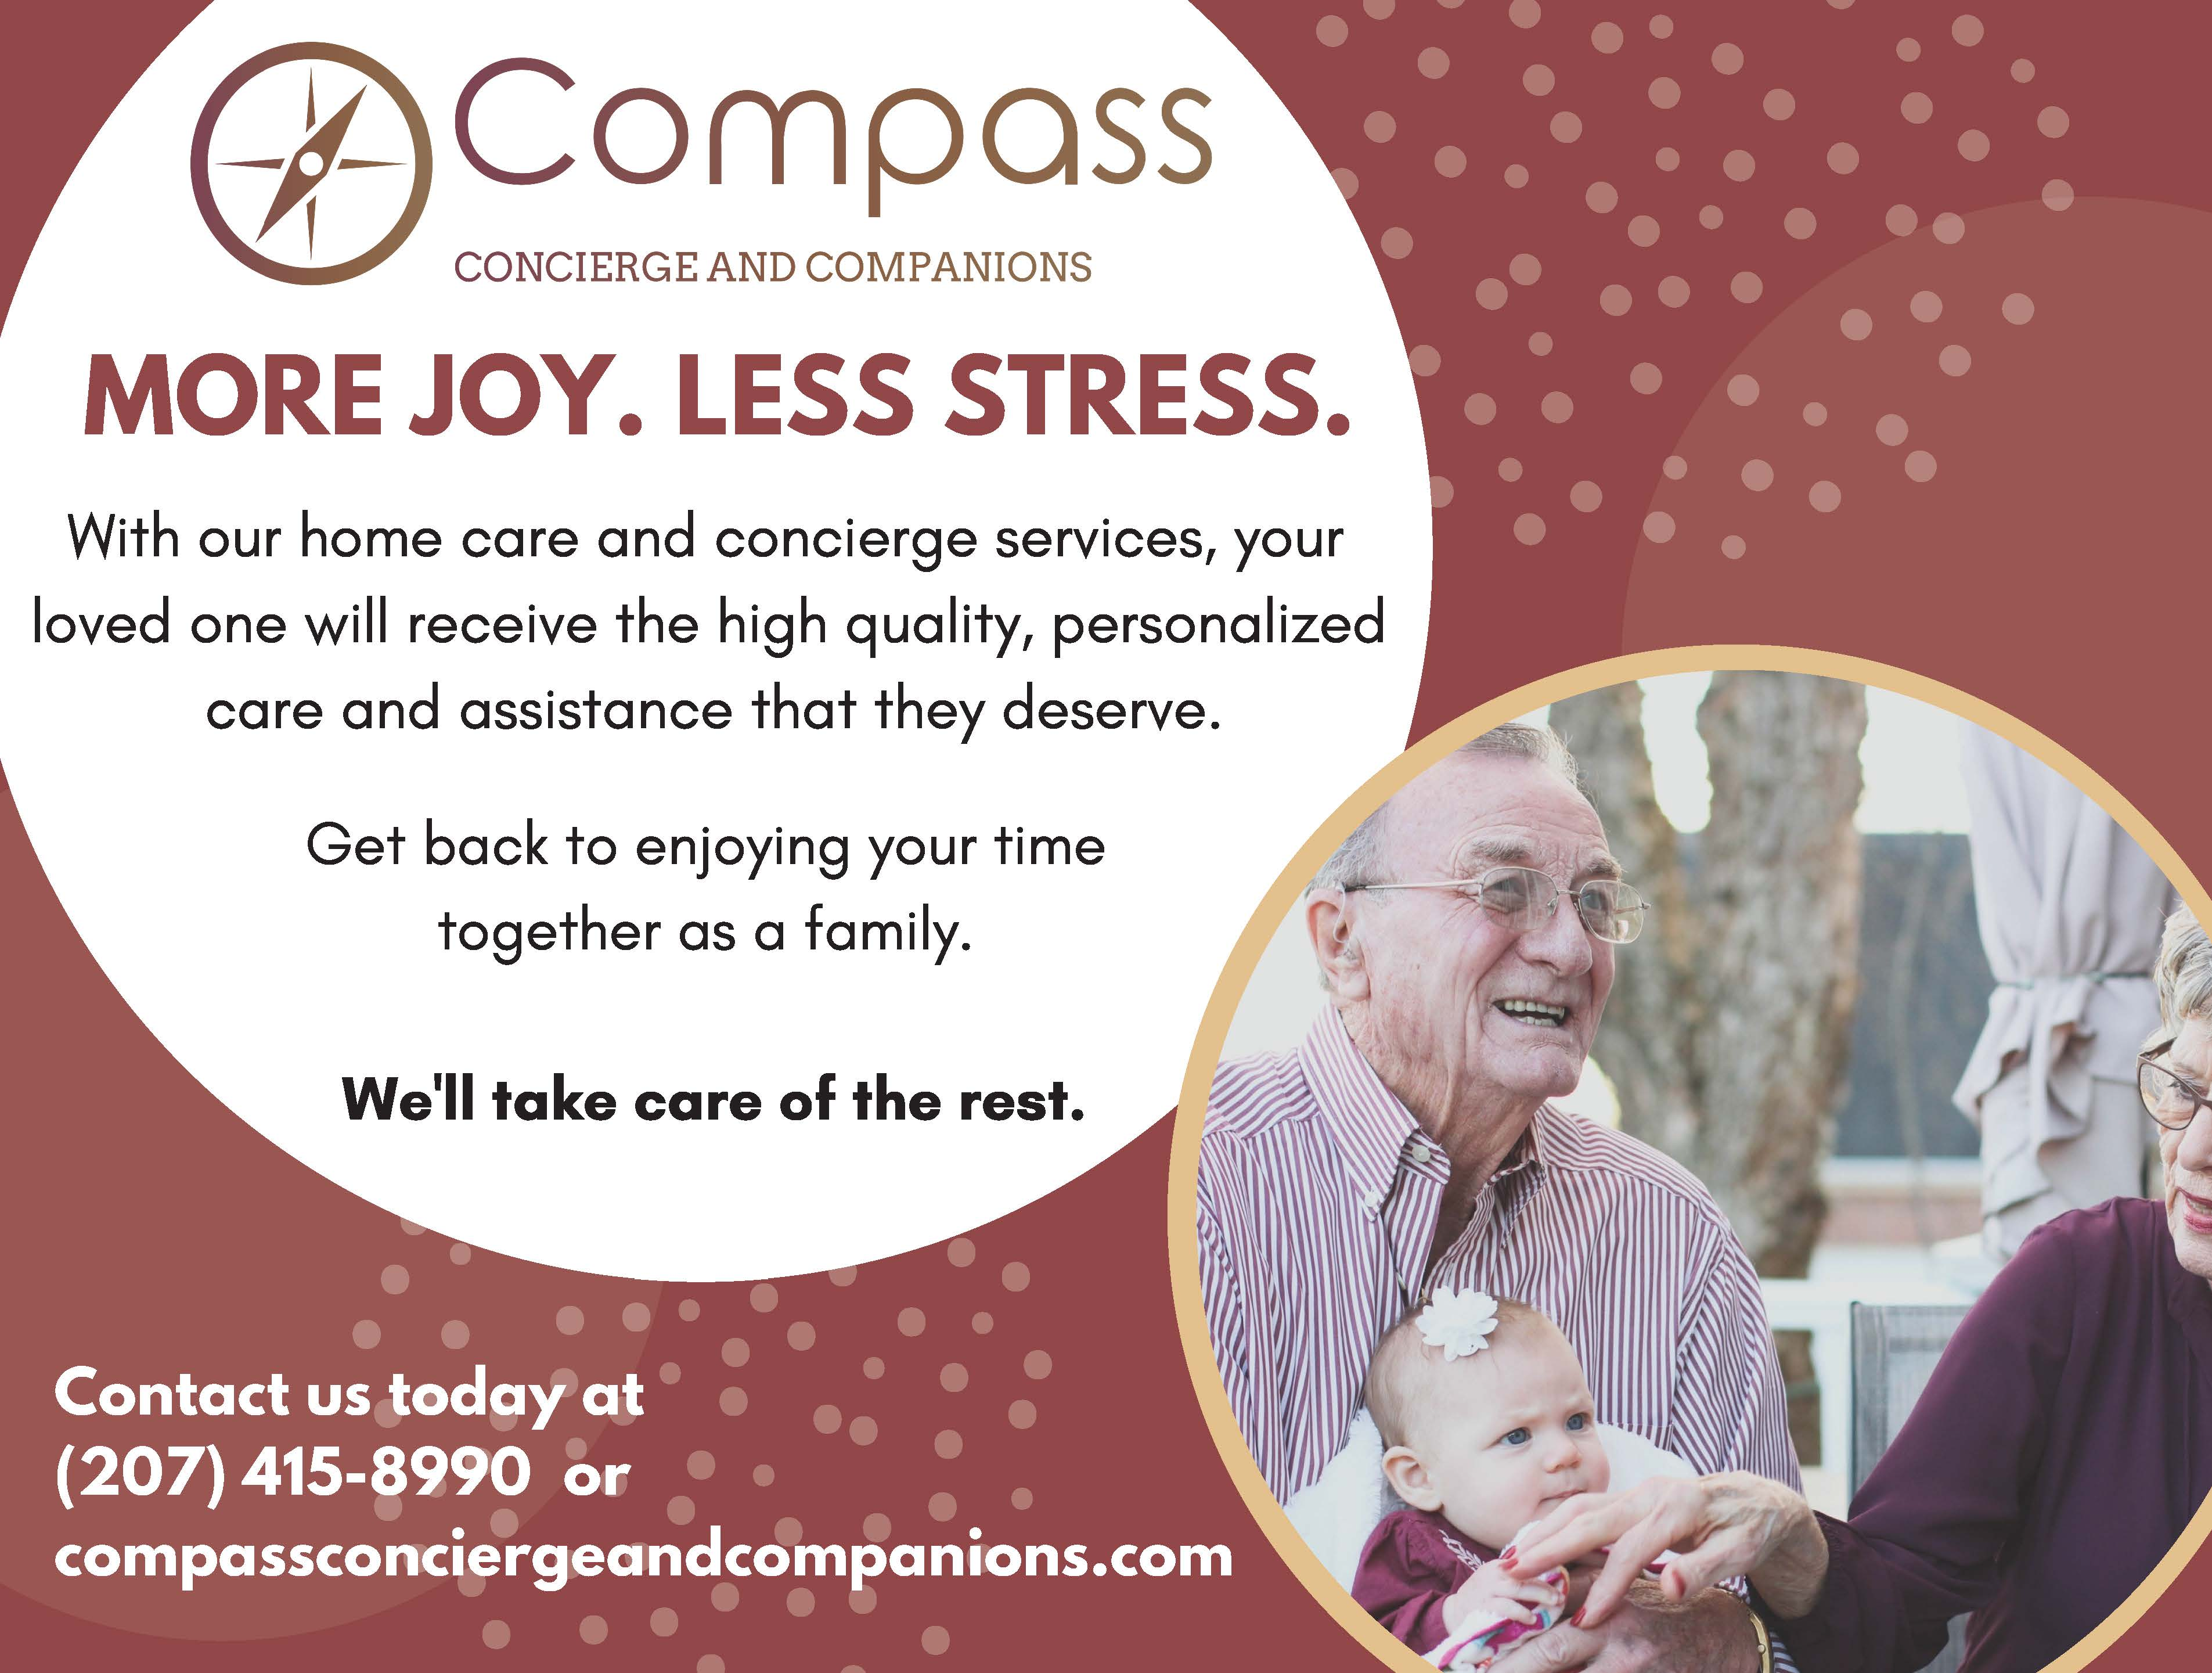 https://www.compassconciergeandcompanions.com/